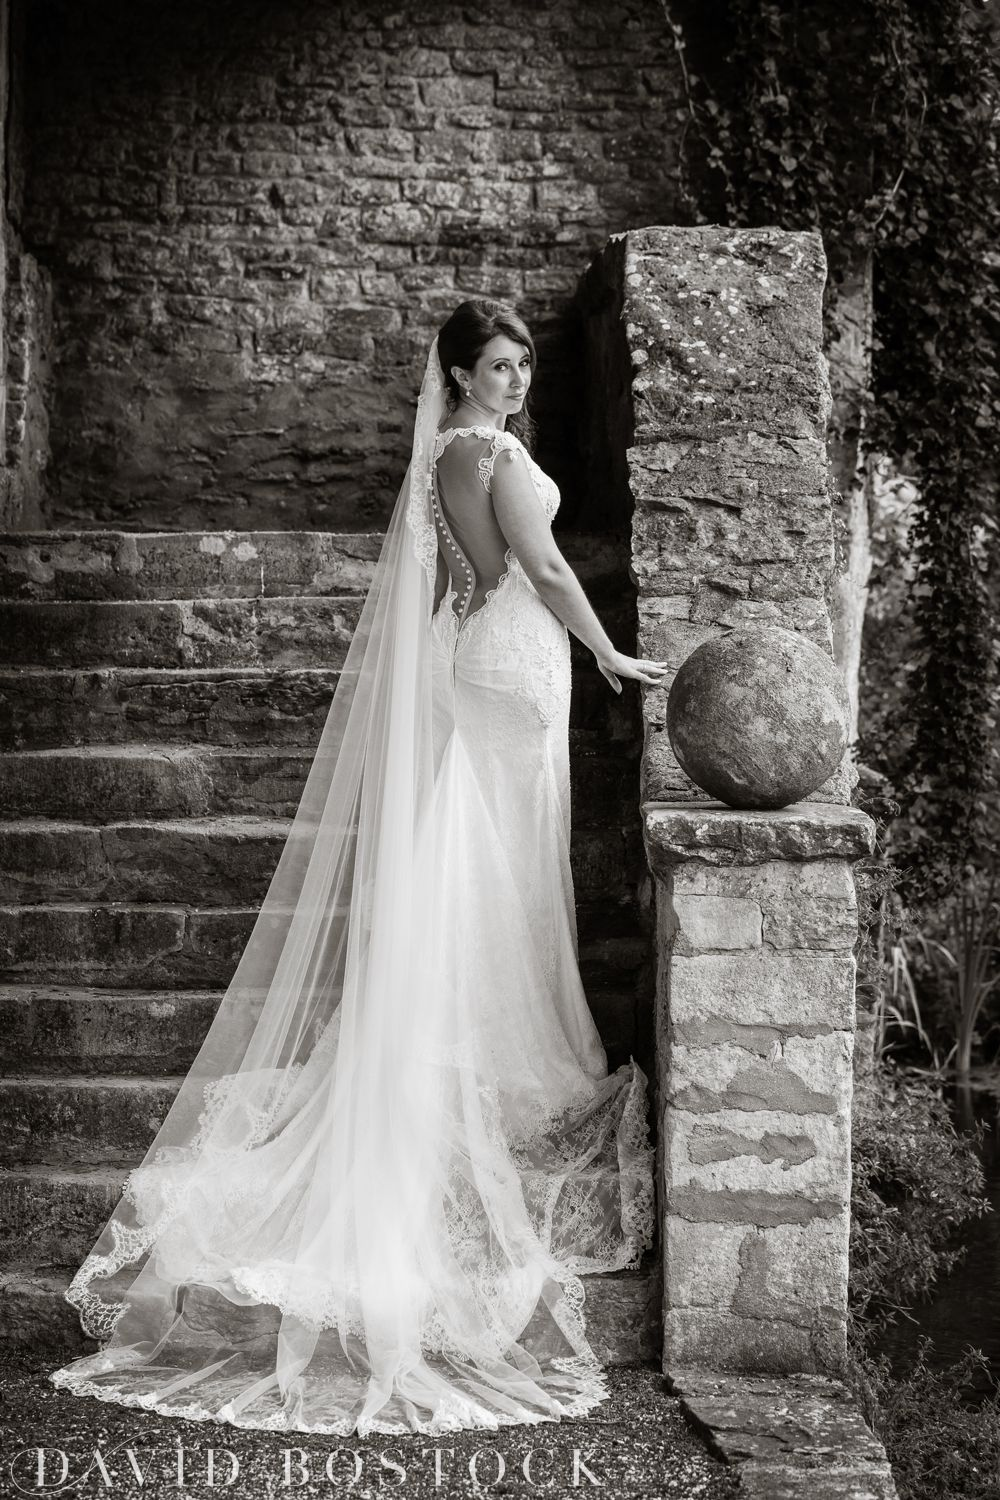 Le Manoir Wedding_David Bostock